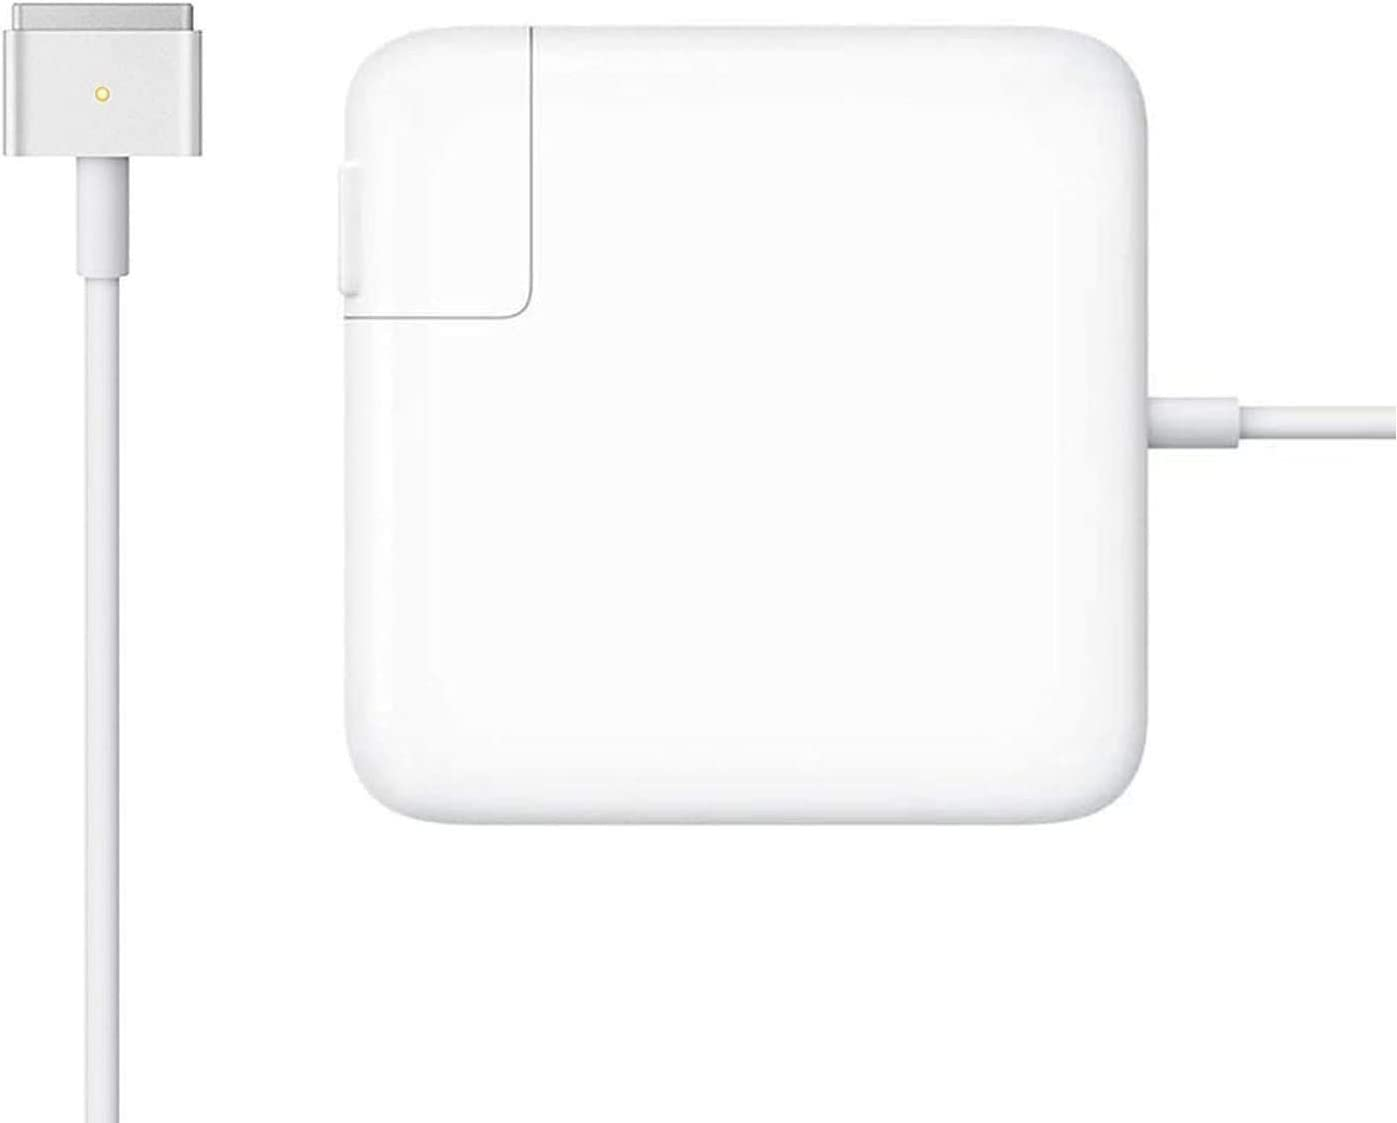 Mac Book Pro Charger, 85W Magsafe 2 T-Tip Power Adapter (for MacBook Pro with Retina Display)